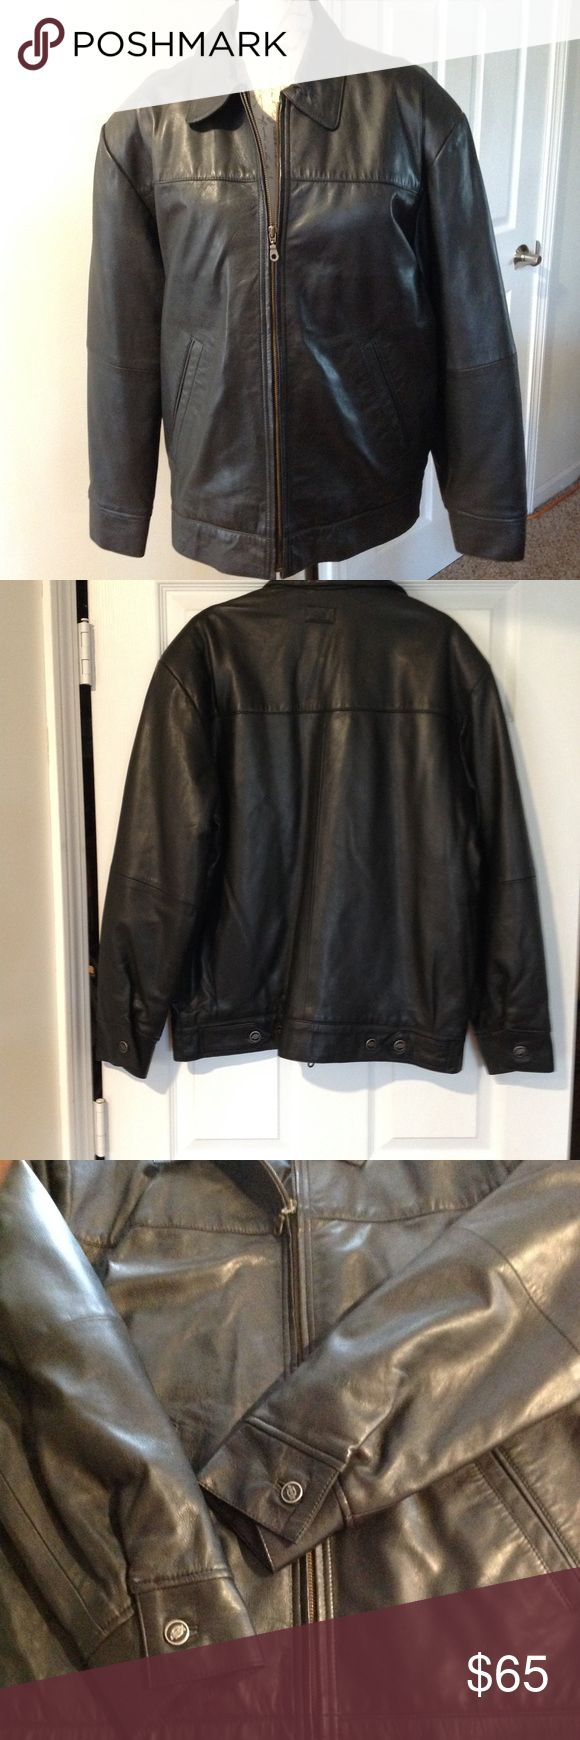 """Dickies Leather Jacket Dickies  black leather Jacket. Fully lined   24"""" across chest, 28"""" shoulder to hem    2 front pockets, one inside zipper pocket. NWOT. Could be Men's or women's jacket Dickies Jackets & Coats"""